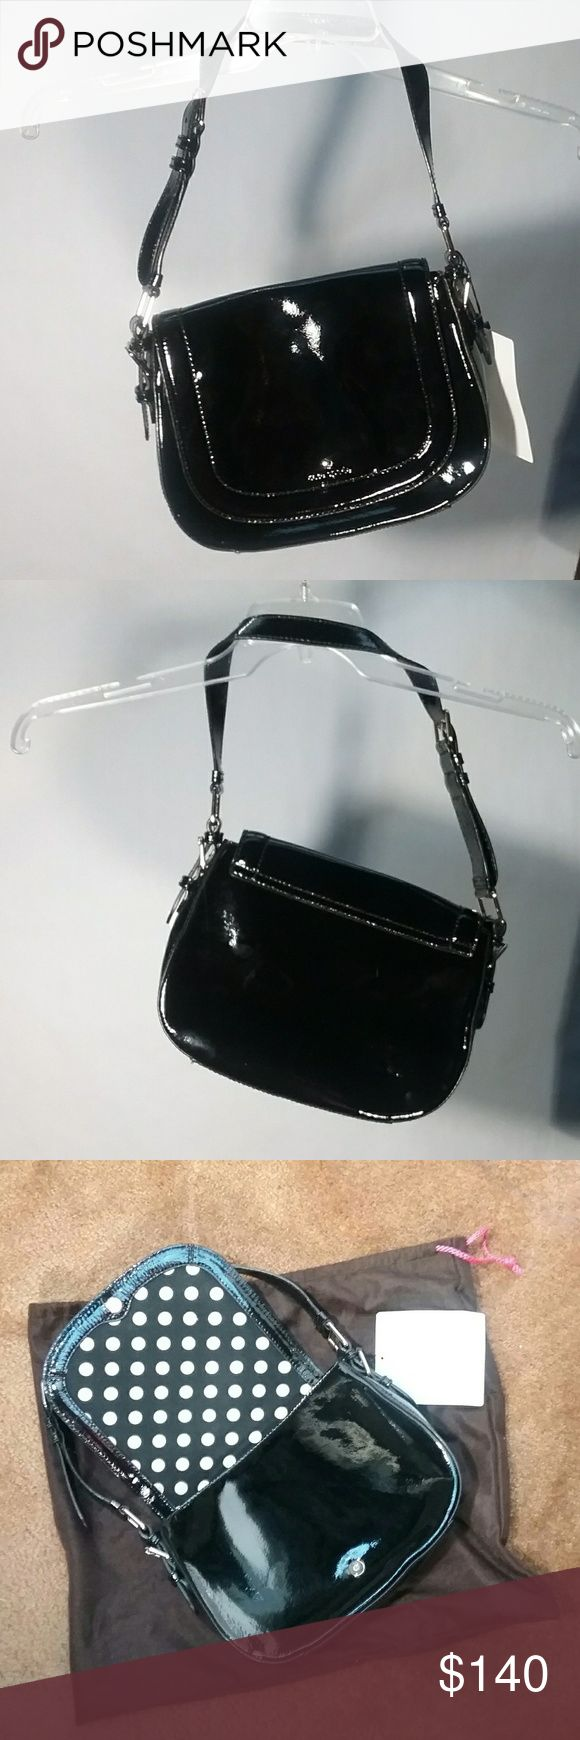 Black kate spade Carlisle Street Piper Preowned from designer consignment shop.Very good condition, clean inside, no stains or smells. I've done my best to inspect & have indicated the minor scratches seen in the pics. The tag was attached by consignment shop to authenticate.  Dustbag included.  A gilded spade charm & logo adorn the front flap of a proper patent shoulder bag in a classic silhouette. Magnetic-snap closure.Adjustable strap.Interior zip, wall and cell phone pockets.Patent…